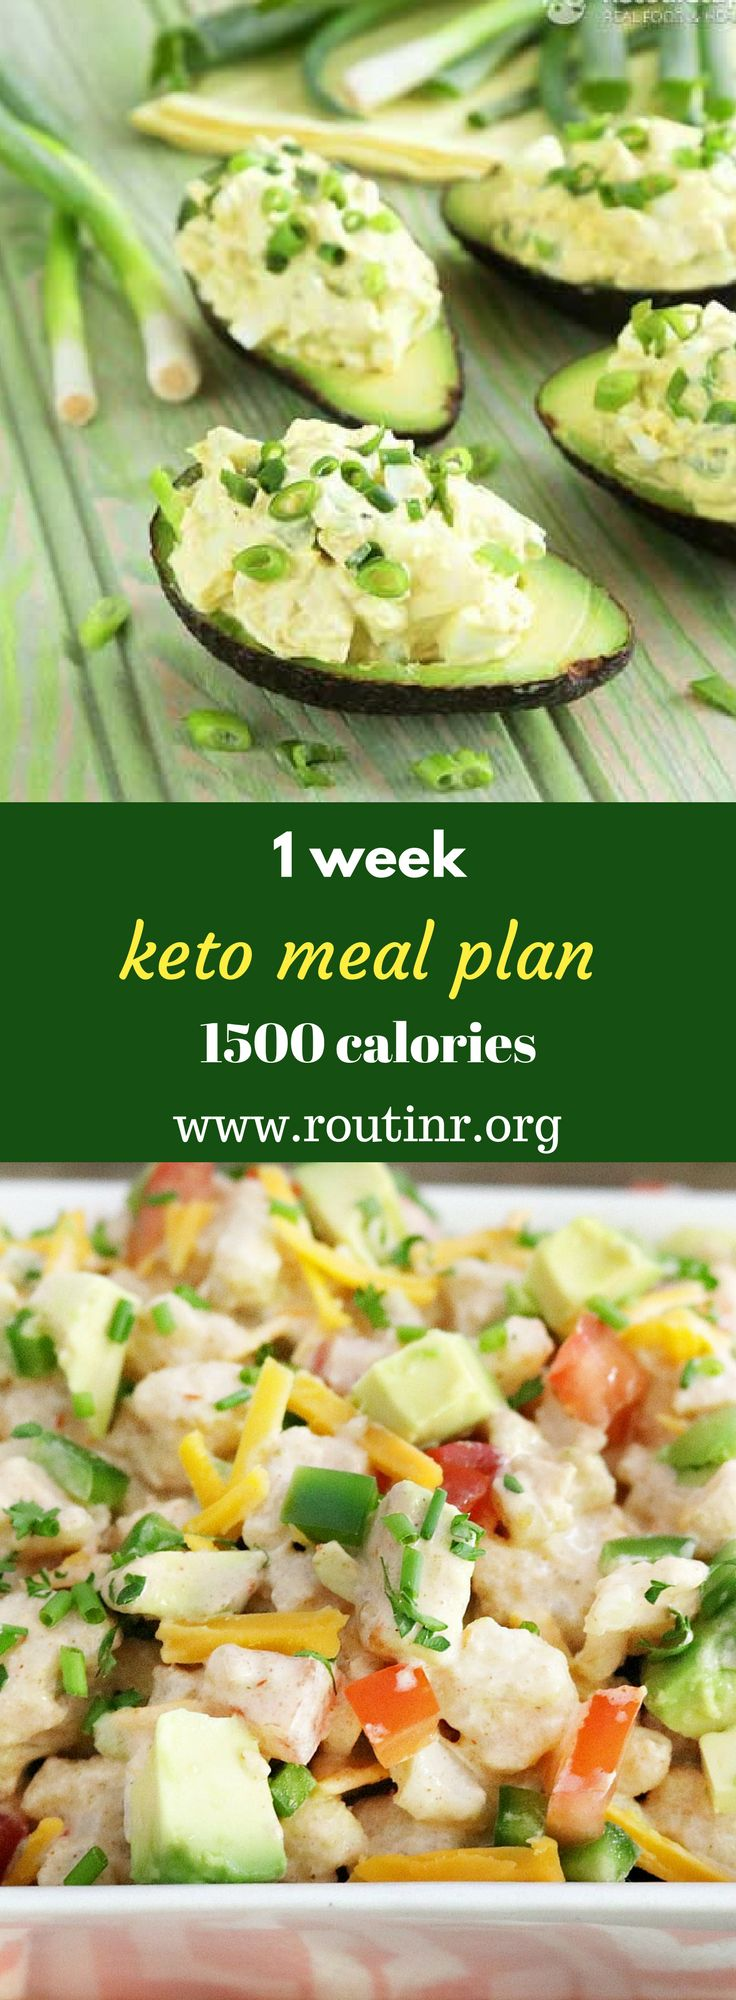 Keto Meal Plans: 1 week keto meal plan 1500 calories. A ketogenic diet, or keto diet, is a very low-carb diet, which turns the body into a fat-burning machine. It has many potential benefits for weight loss, health and performance, but also some potential initial side effects. Find out more at:https://routinr.org/routines/1-week-keto-meal-plan-1500-calories